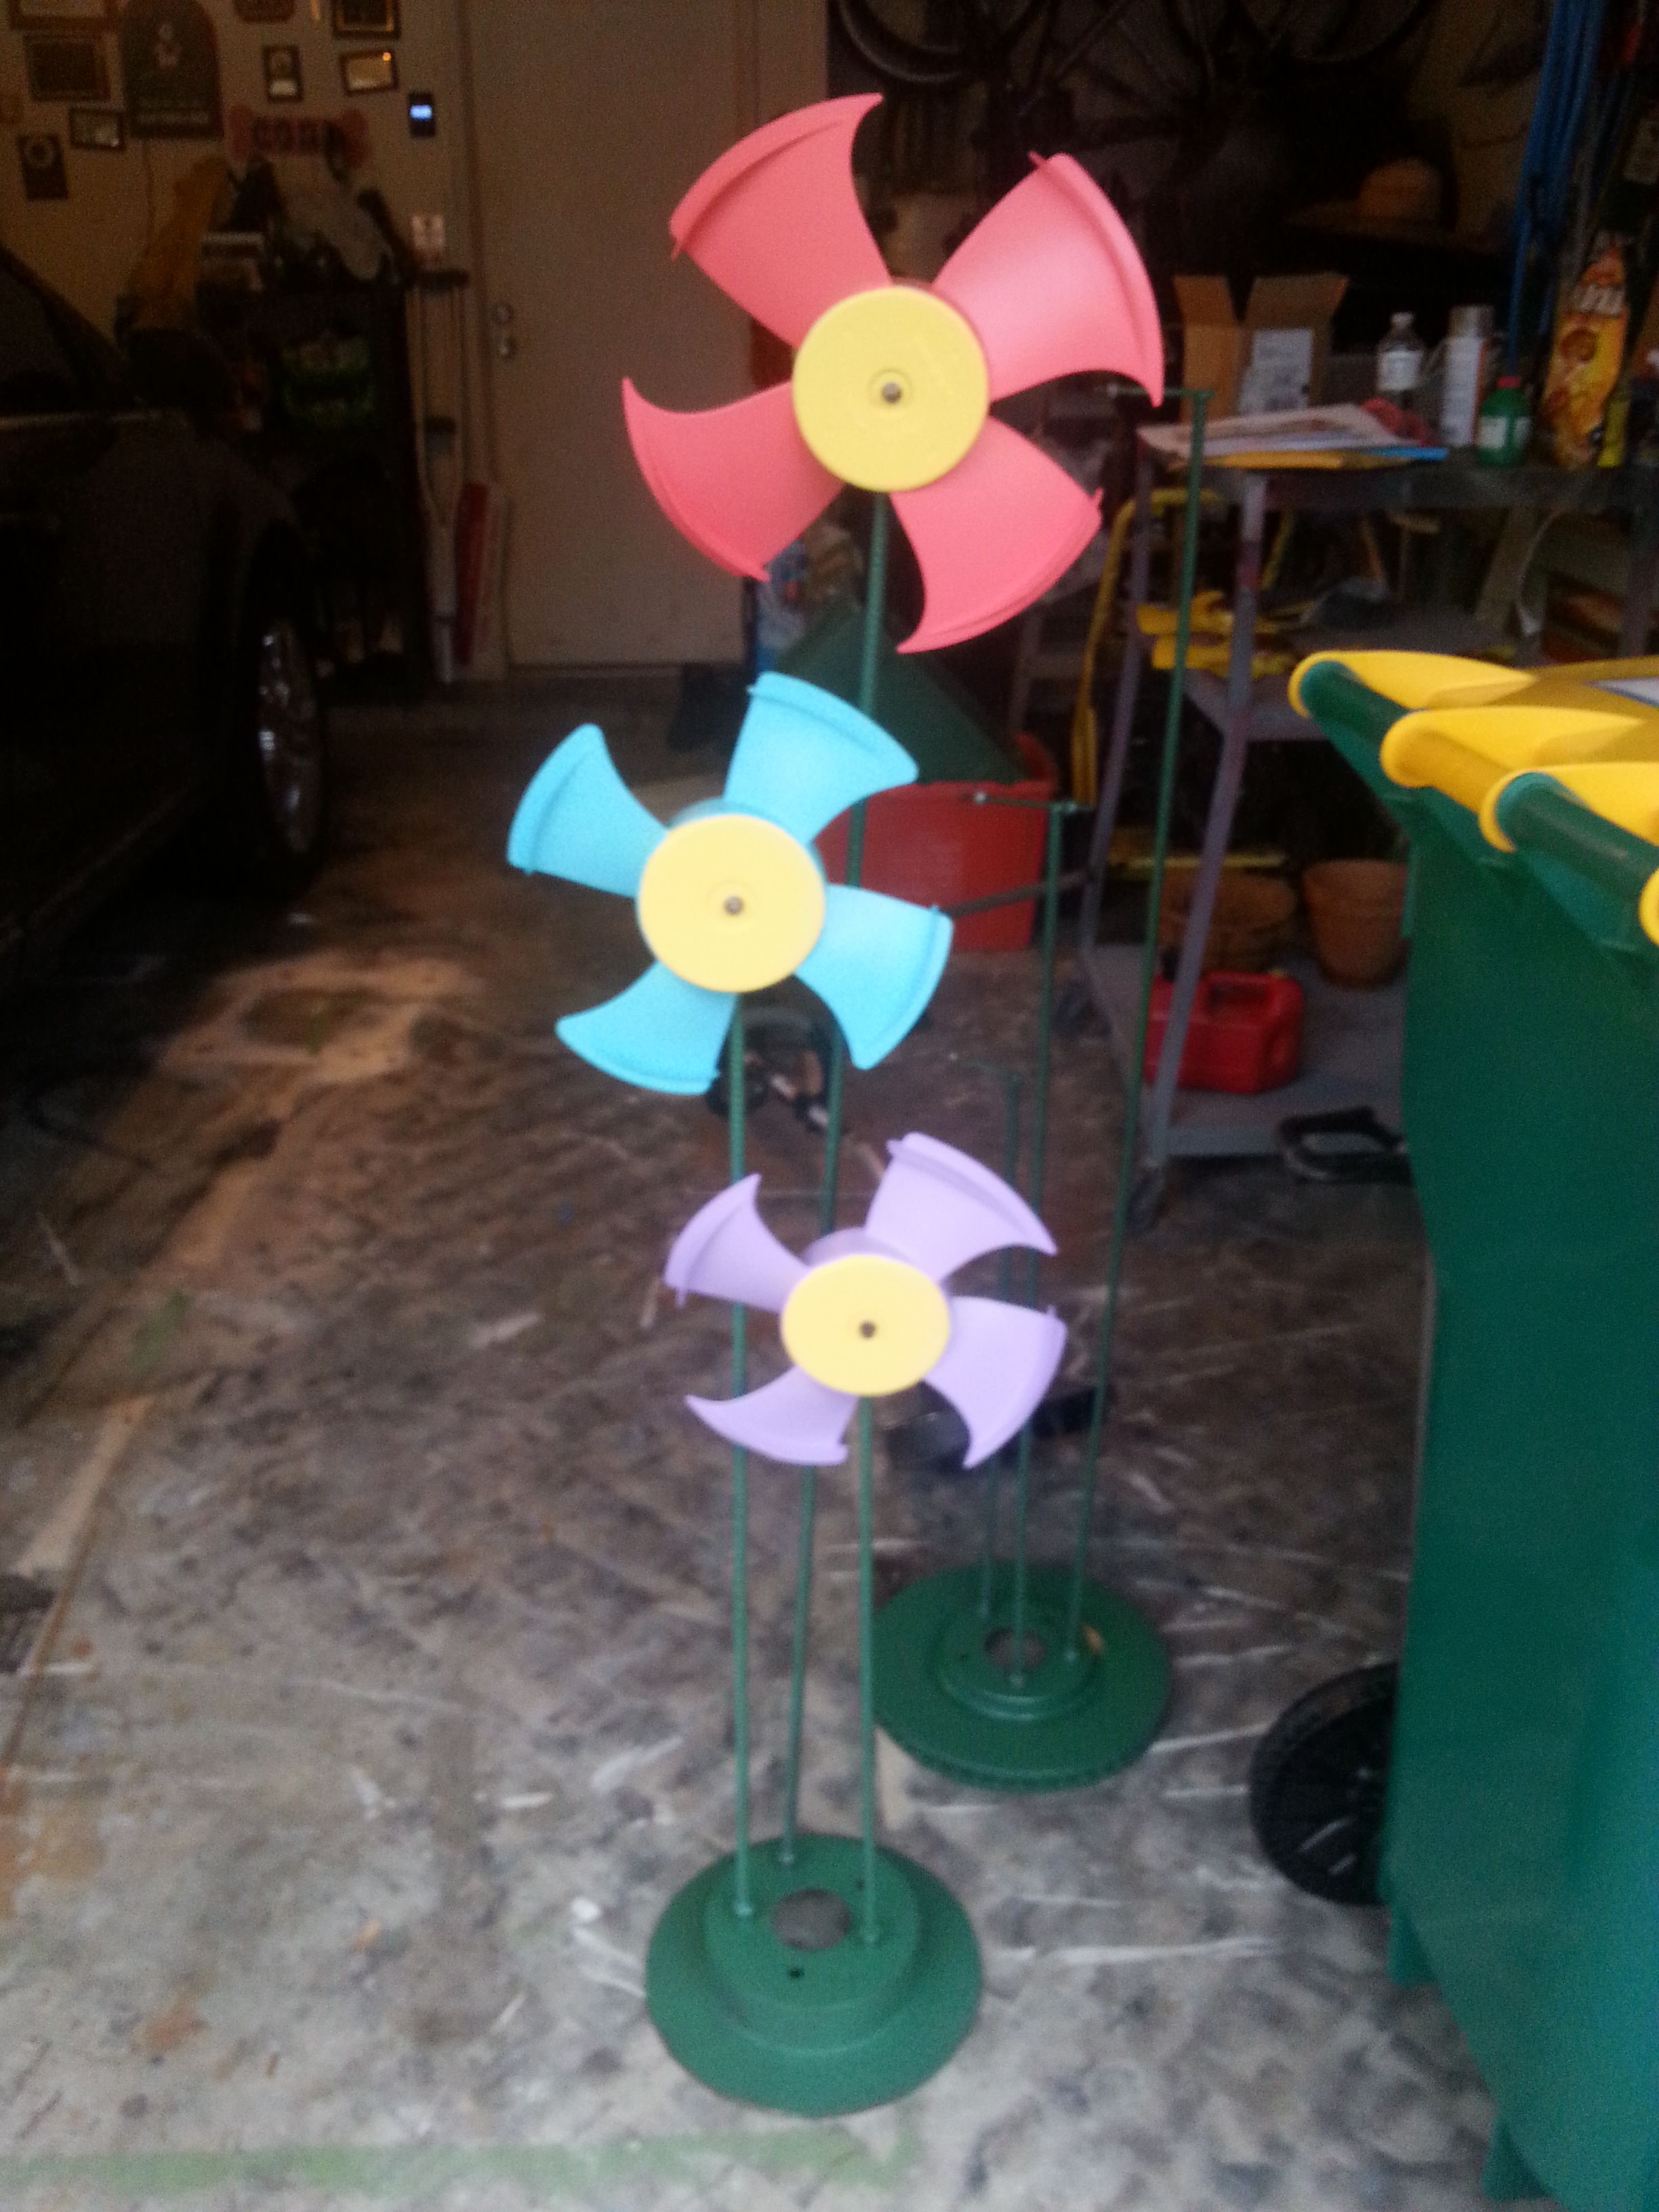 DIY flower car part yard art made from old car parts | Garden crafts ...